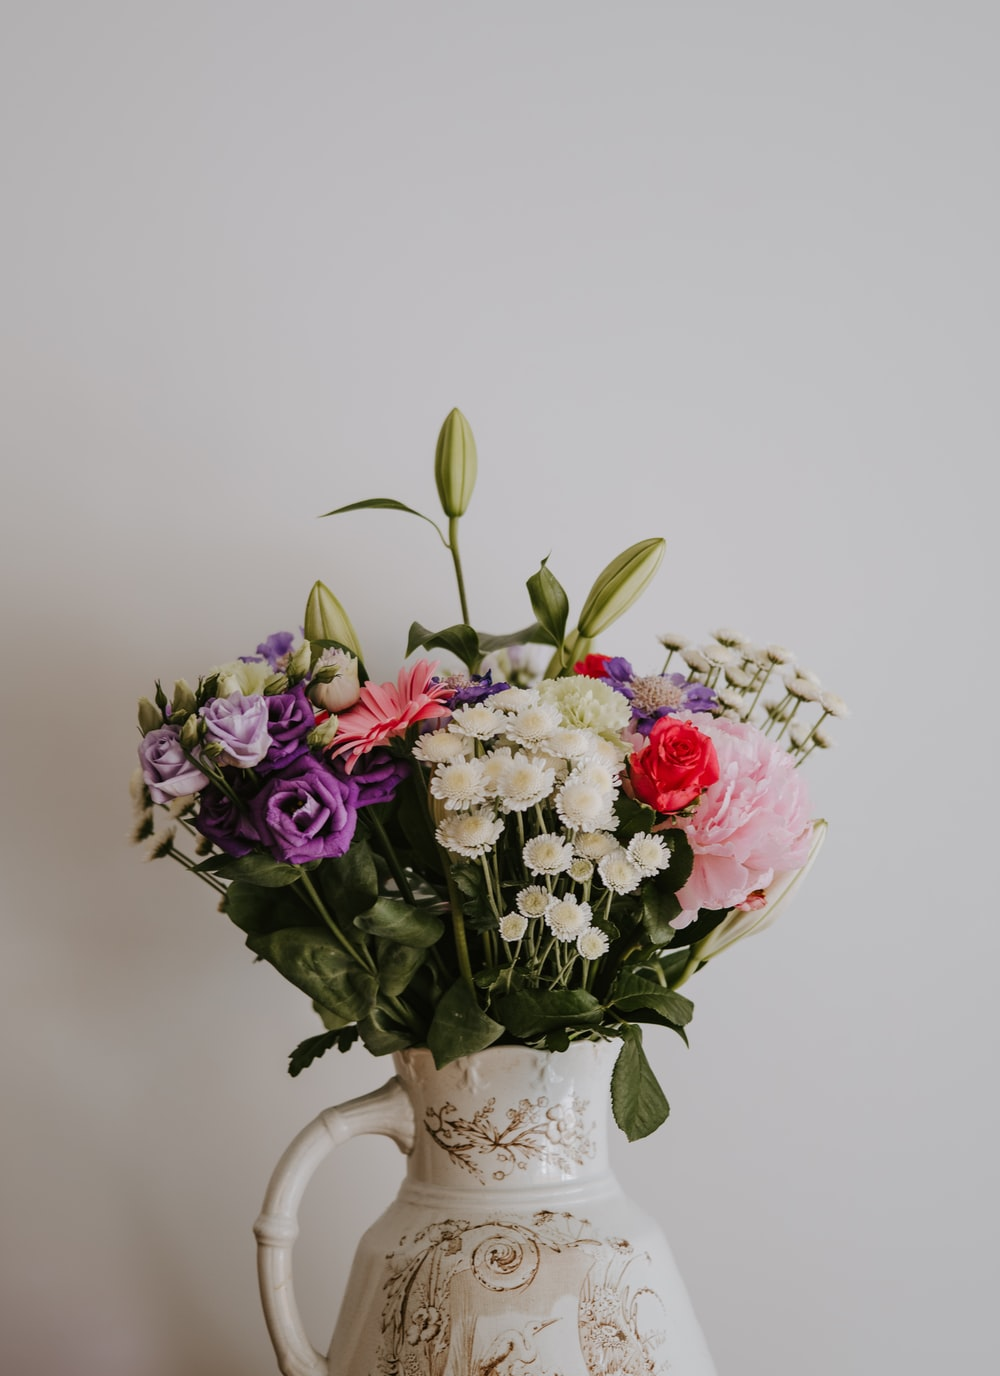 white, red, purple, and pink flowers on white ceramic vase